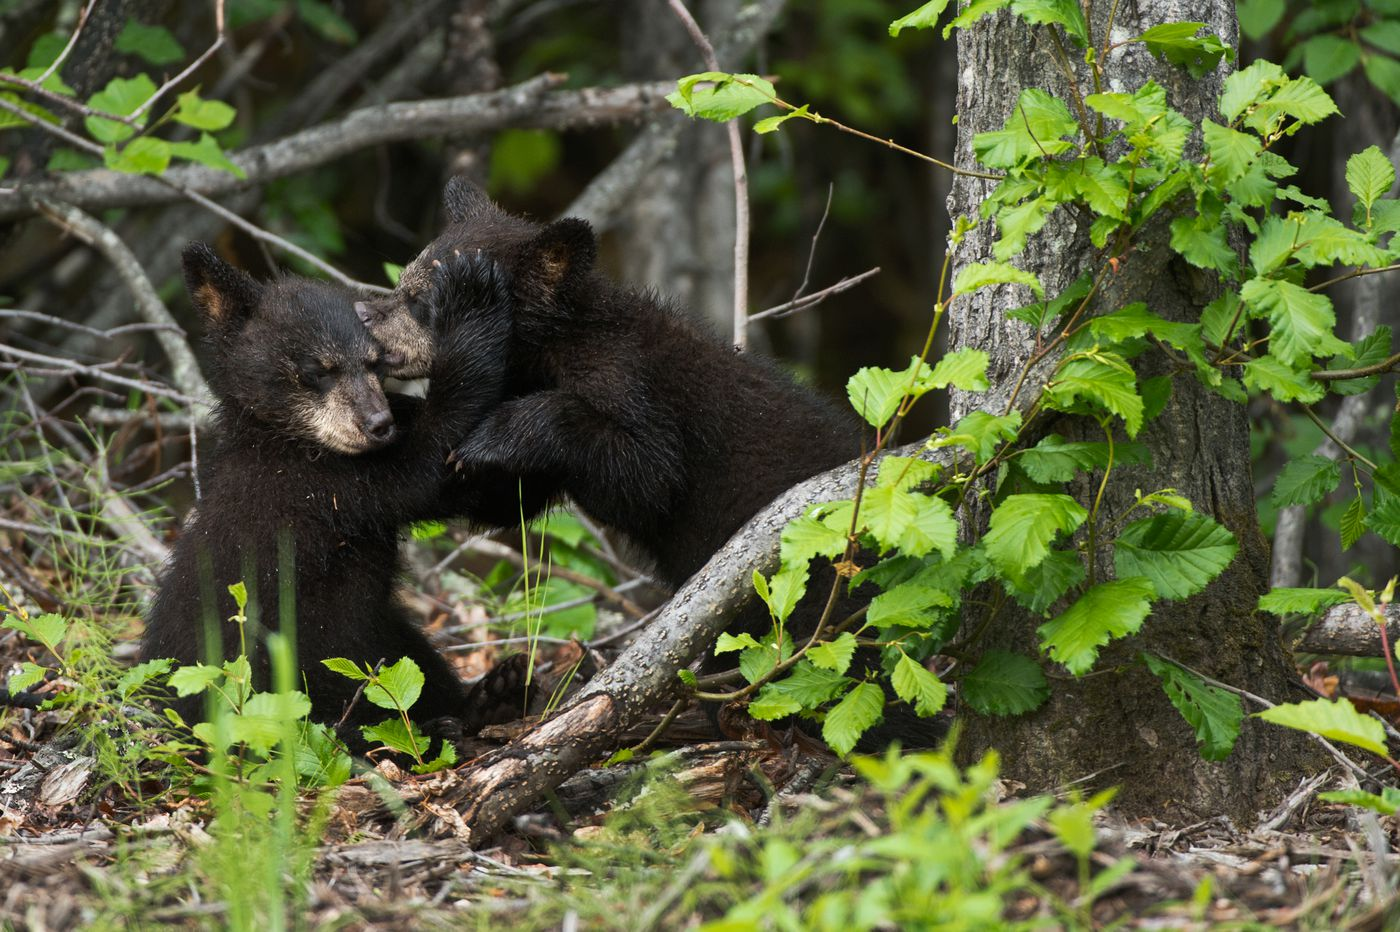 Three black bear cubs wrestled and climbed trees this week along Arctic Valley Road, about a mile fromMoose Run Golf Course. (Marc Lester / Alaska Dispatch News)